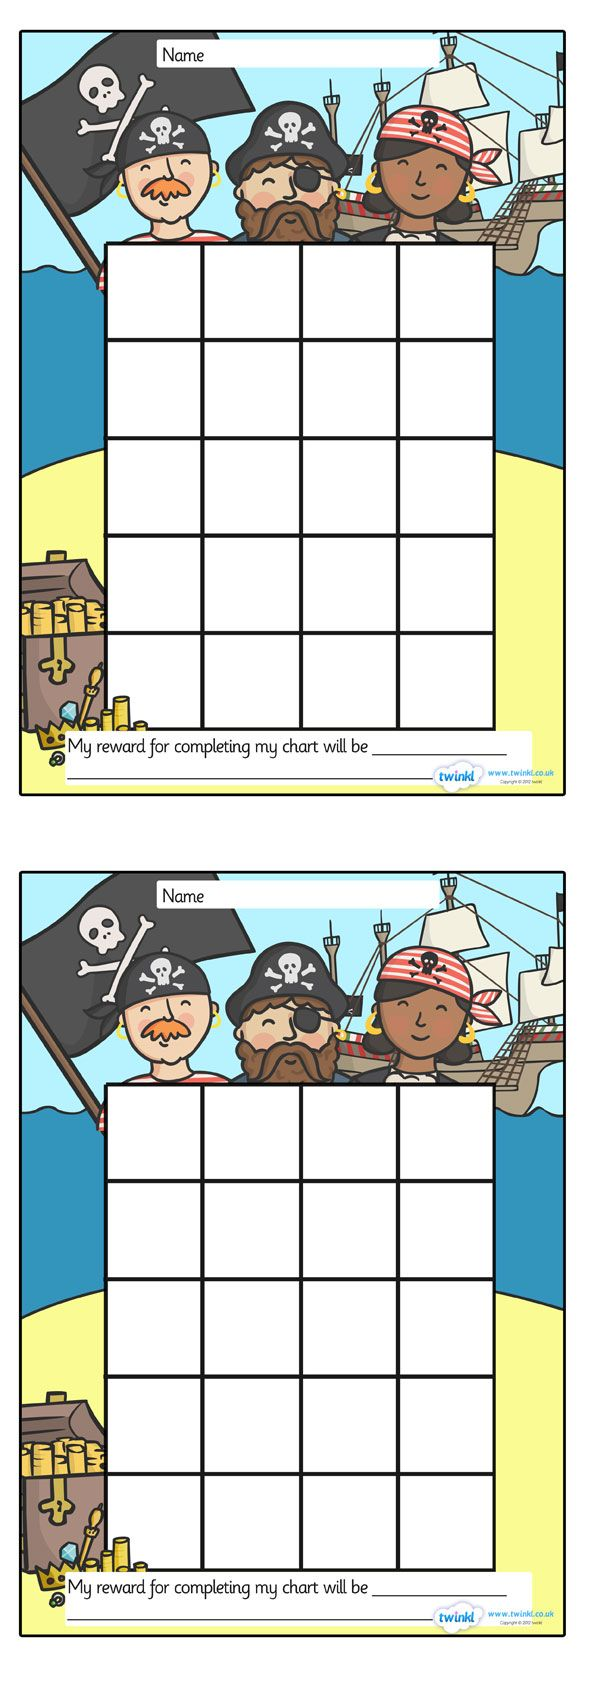 Twinkl Resources >> Pirate Sticker/Stamp Reward Chart >> Classroom printables for Pre-School, Kindergarten, Elementary School and beyond! Rewards, Sticker Charts, Class Management, Behavior